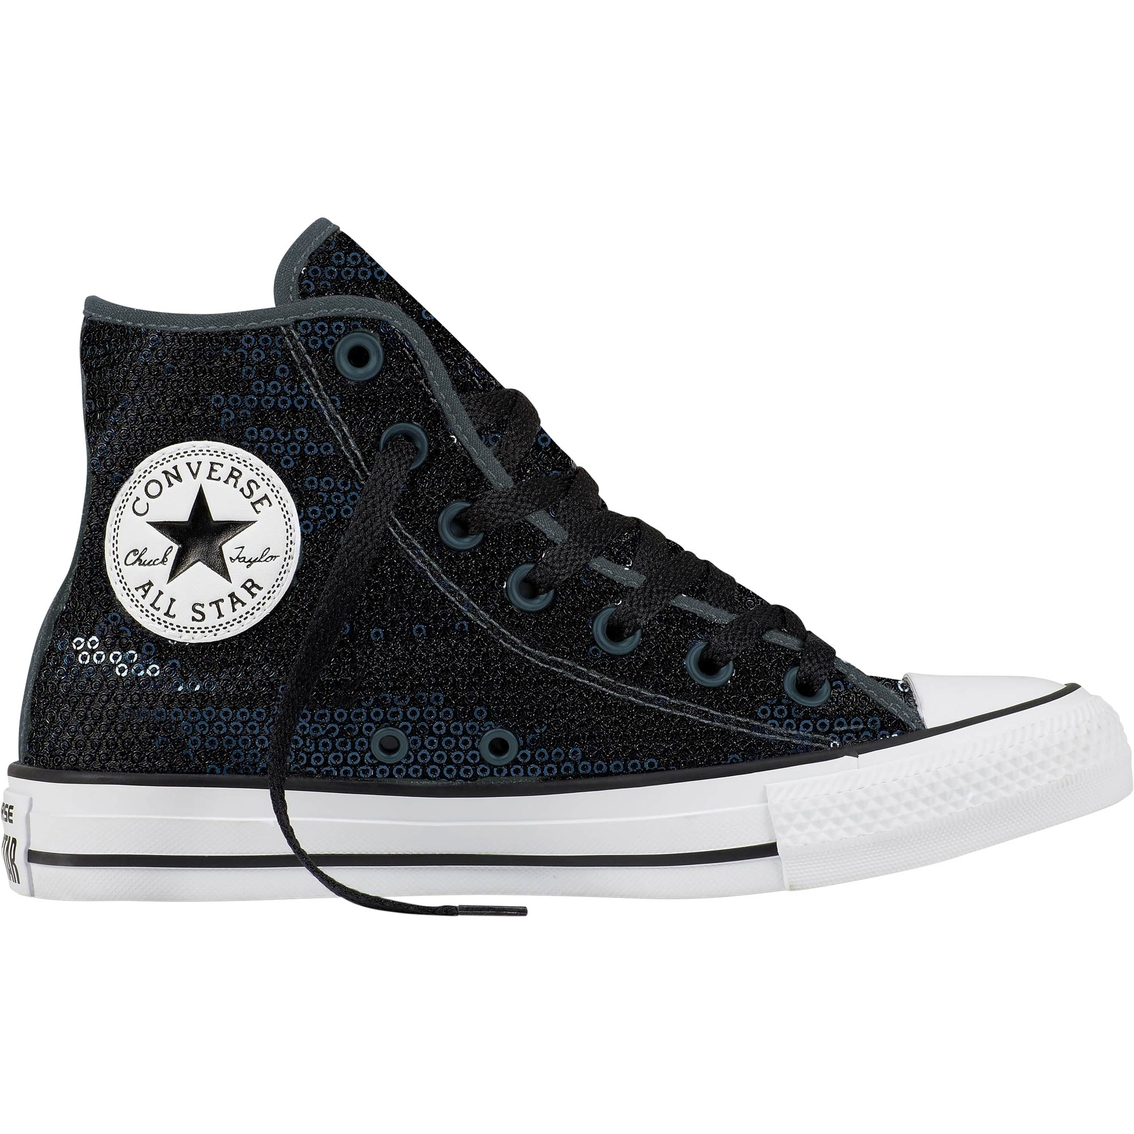 efd04ef46488 Converse Chuck Taylor All Star Women s Sequin High Top Sneakers ...